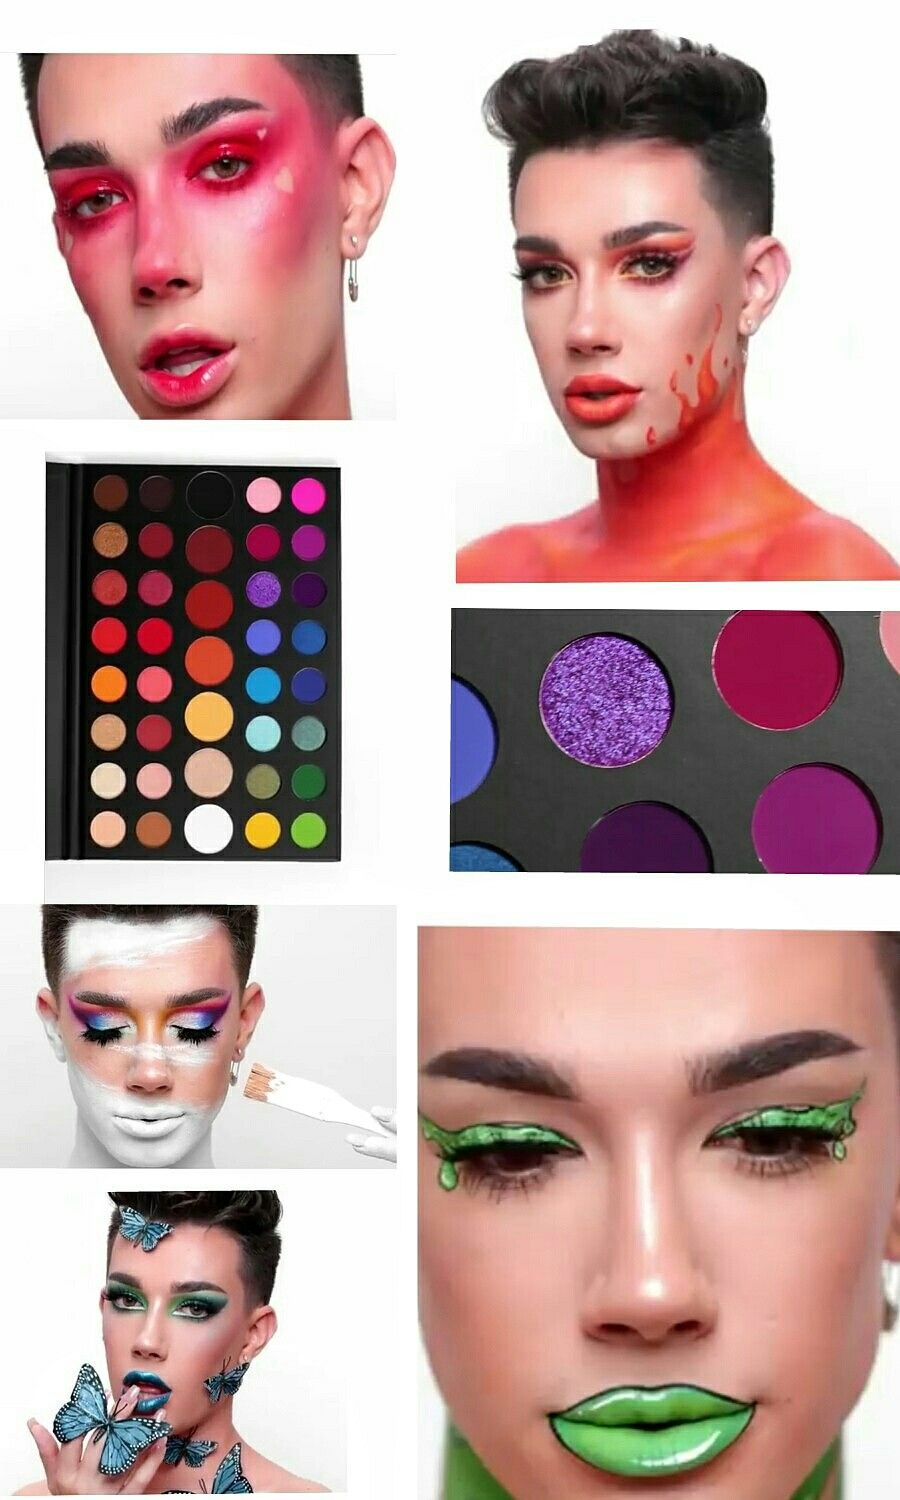 Morphe The James Charles Palette In 2019 Christmas Wish List